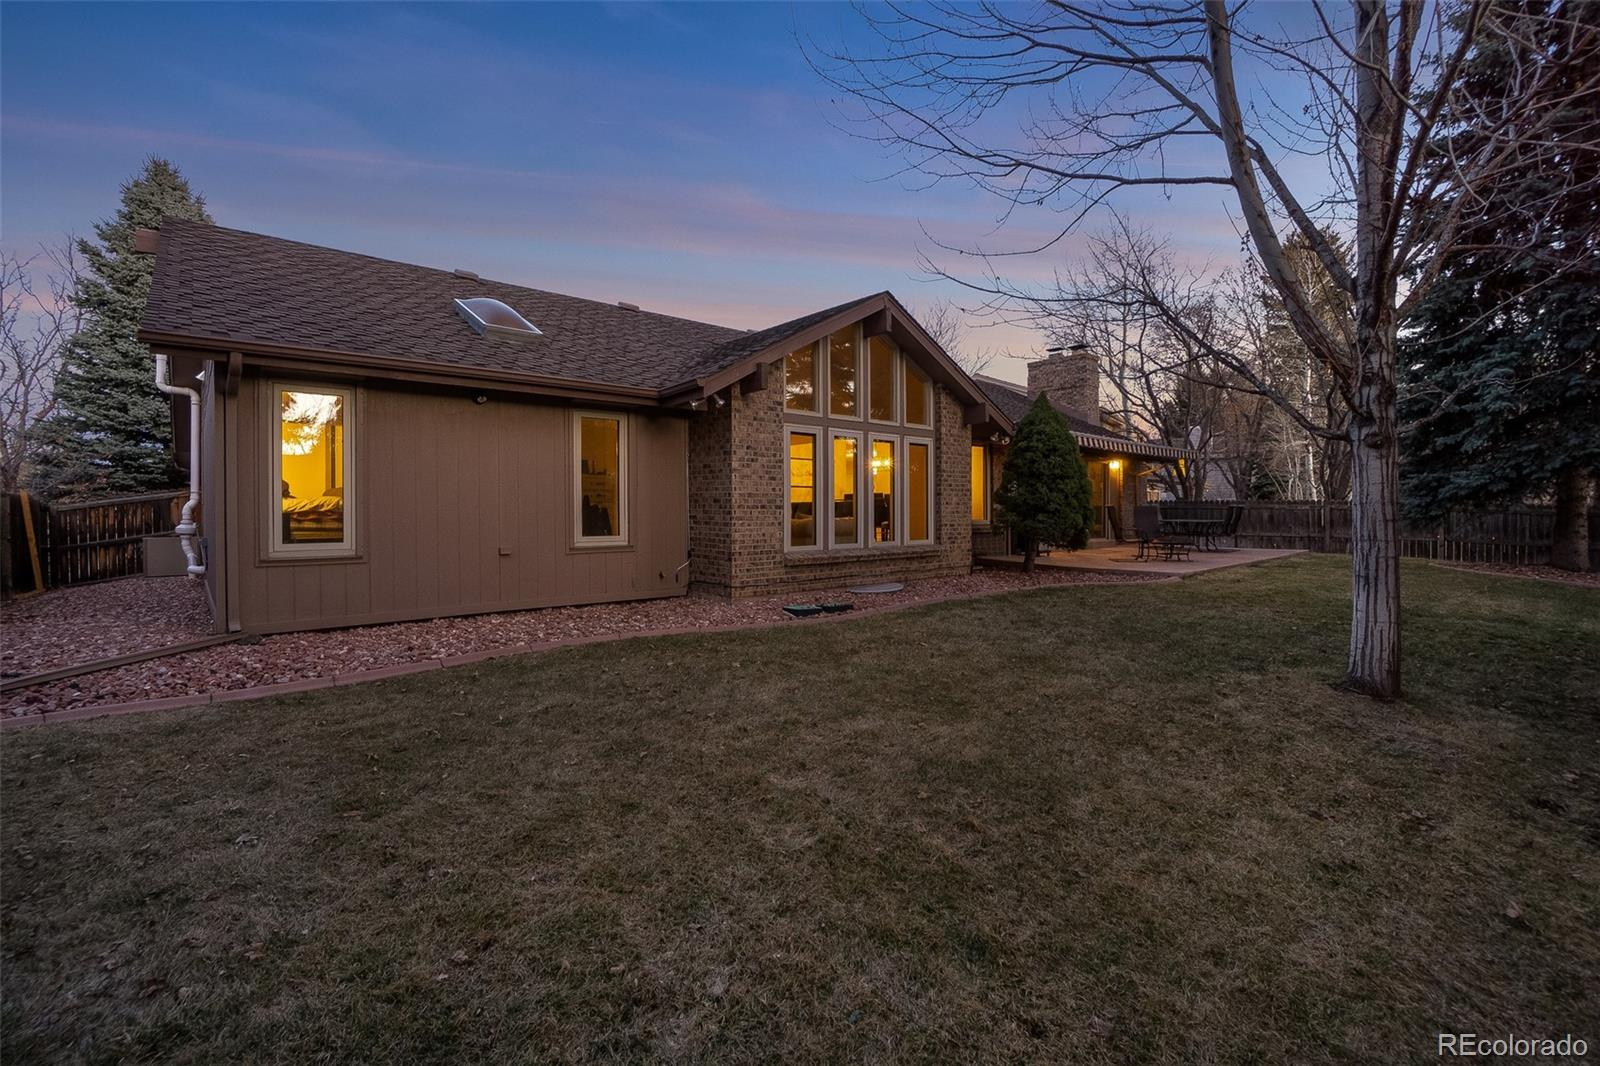 MLS# 9898024 - 35 - 5967 S Glencoe Way, Centennial, CO 80121